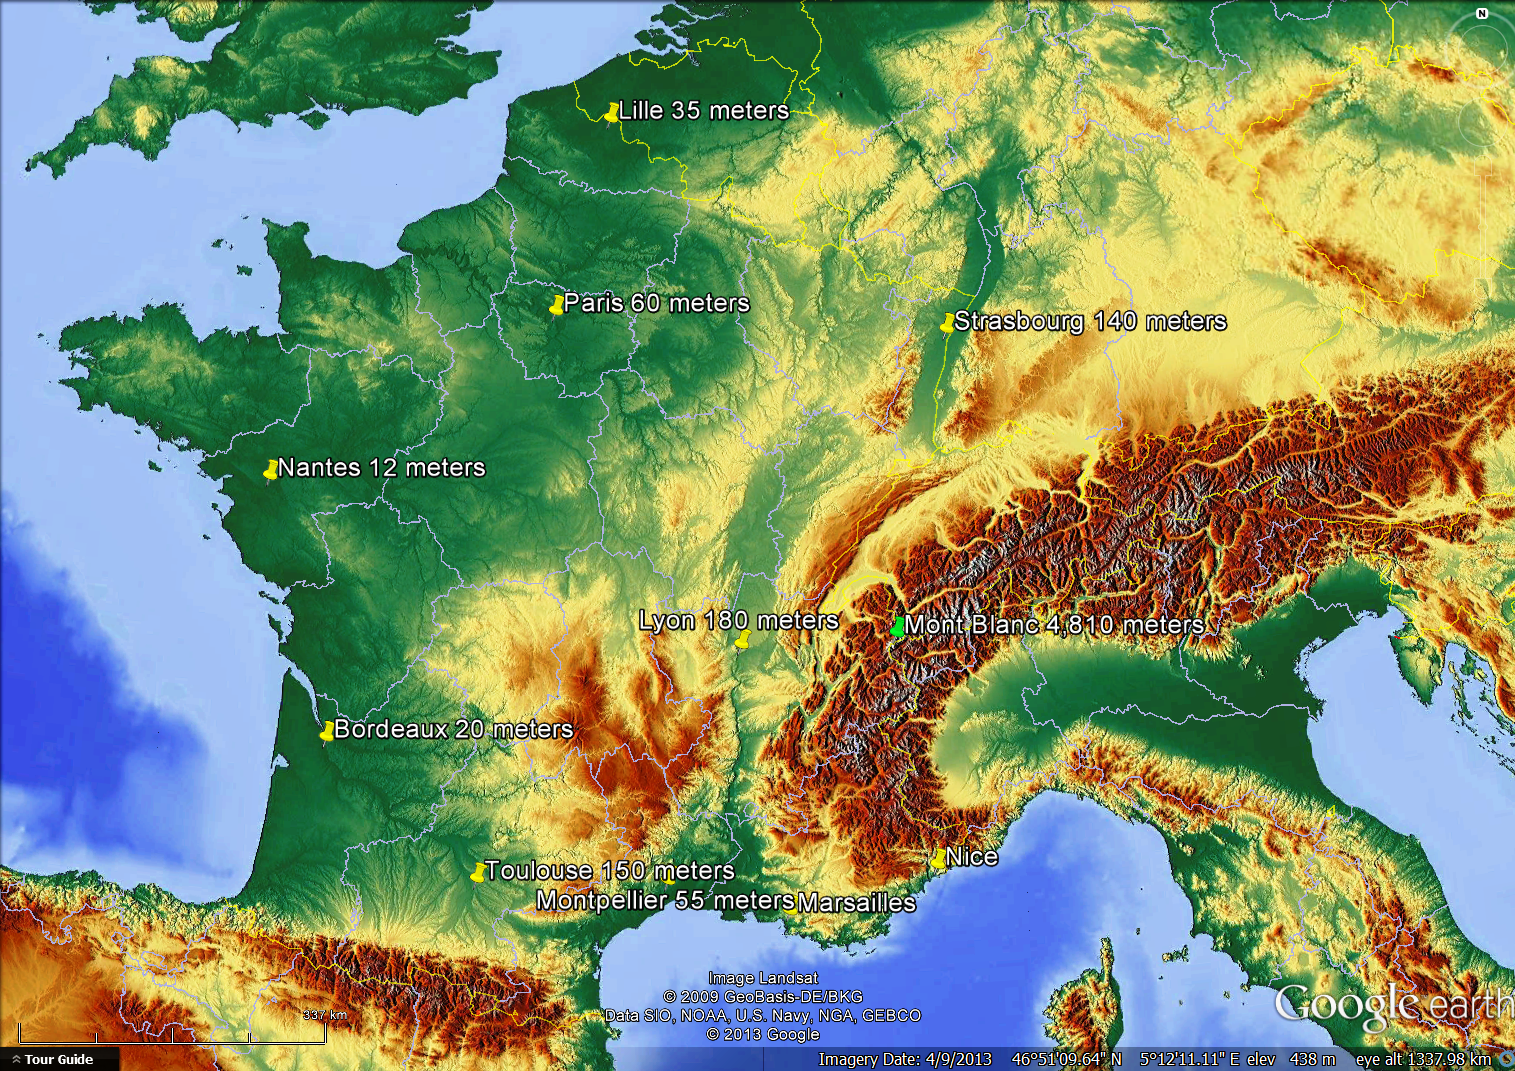 Detailed France geographc map showing elevations.